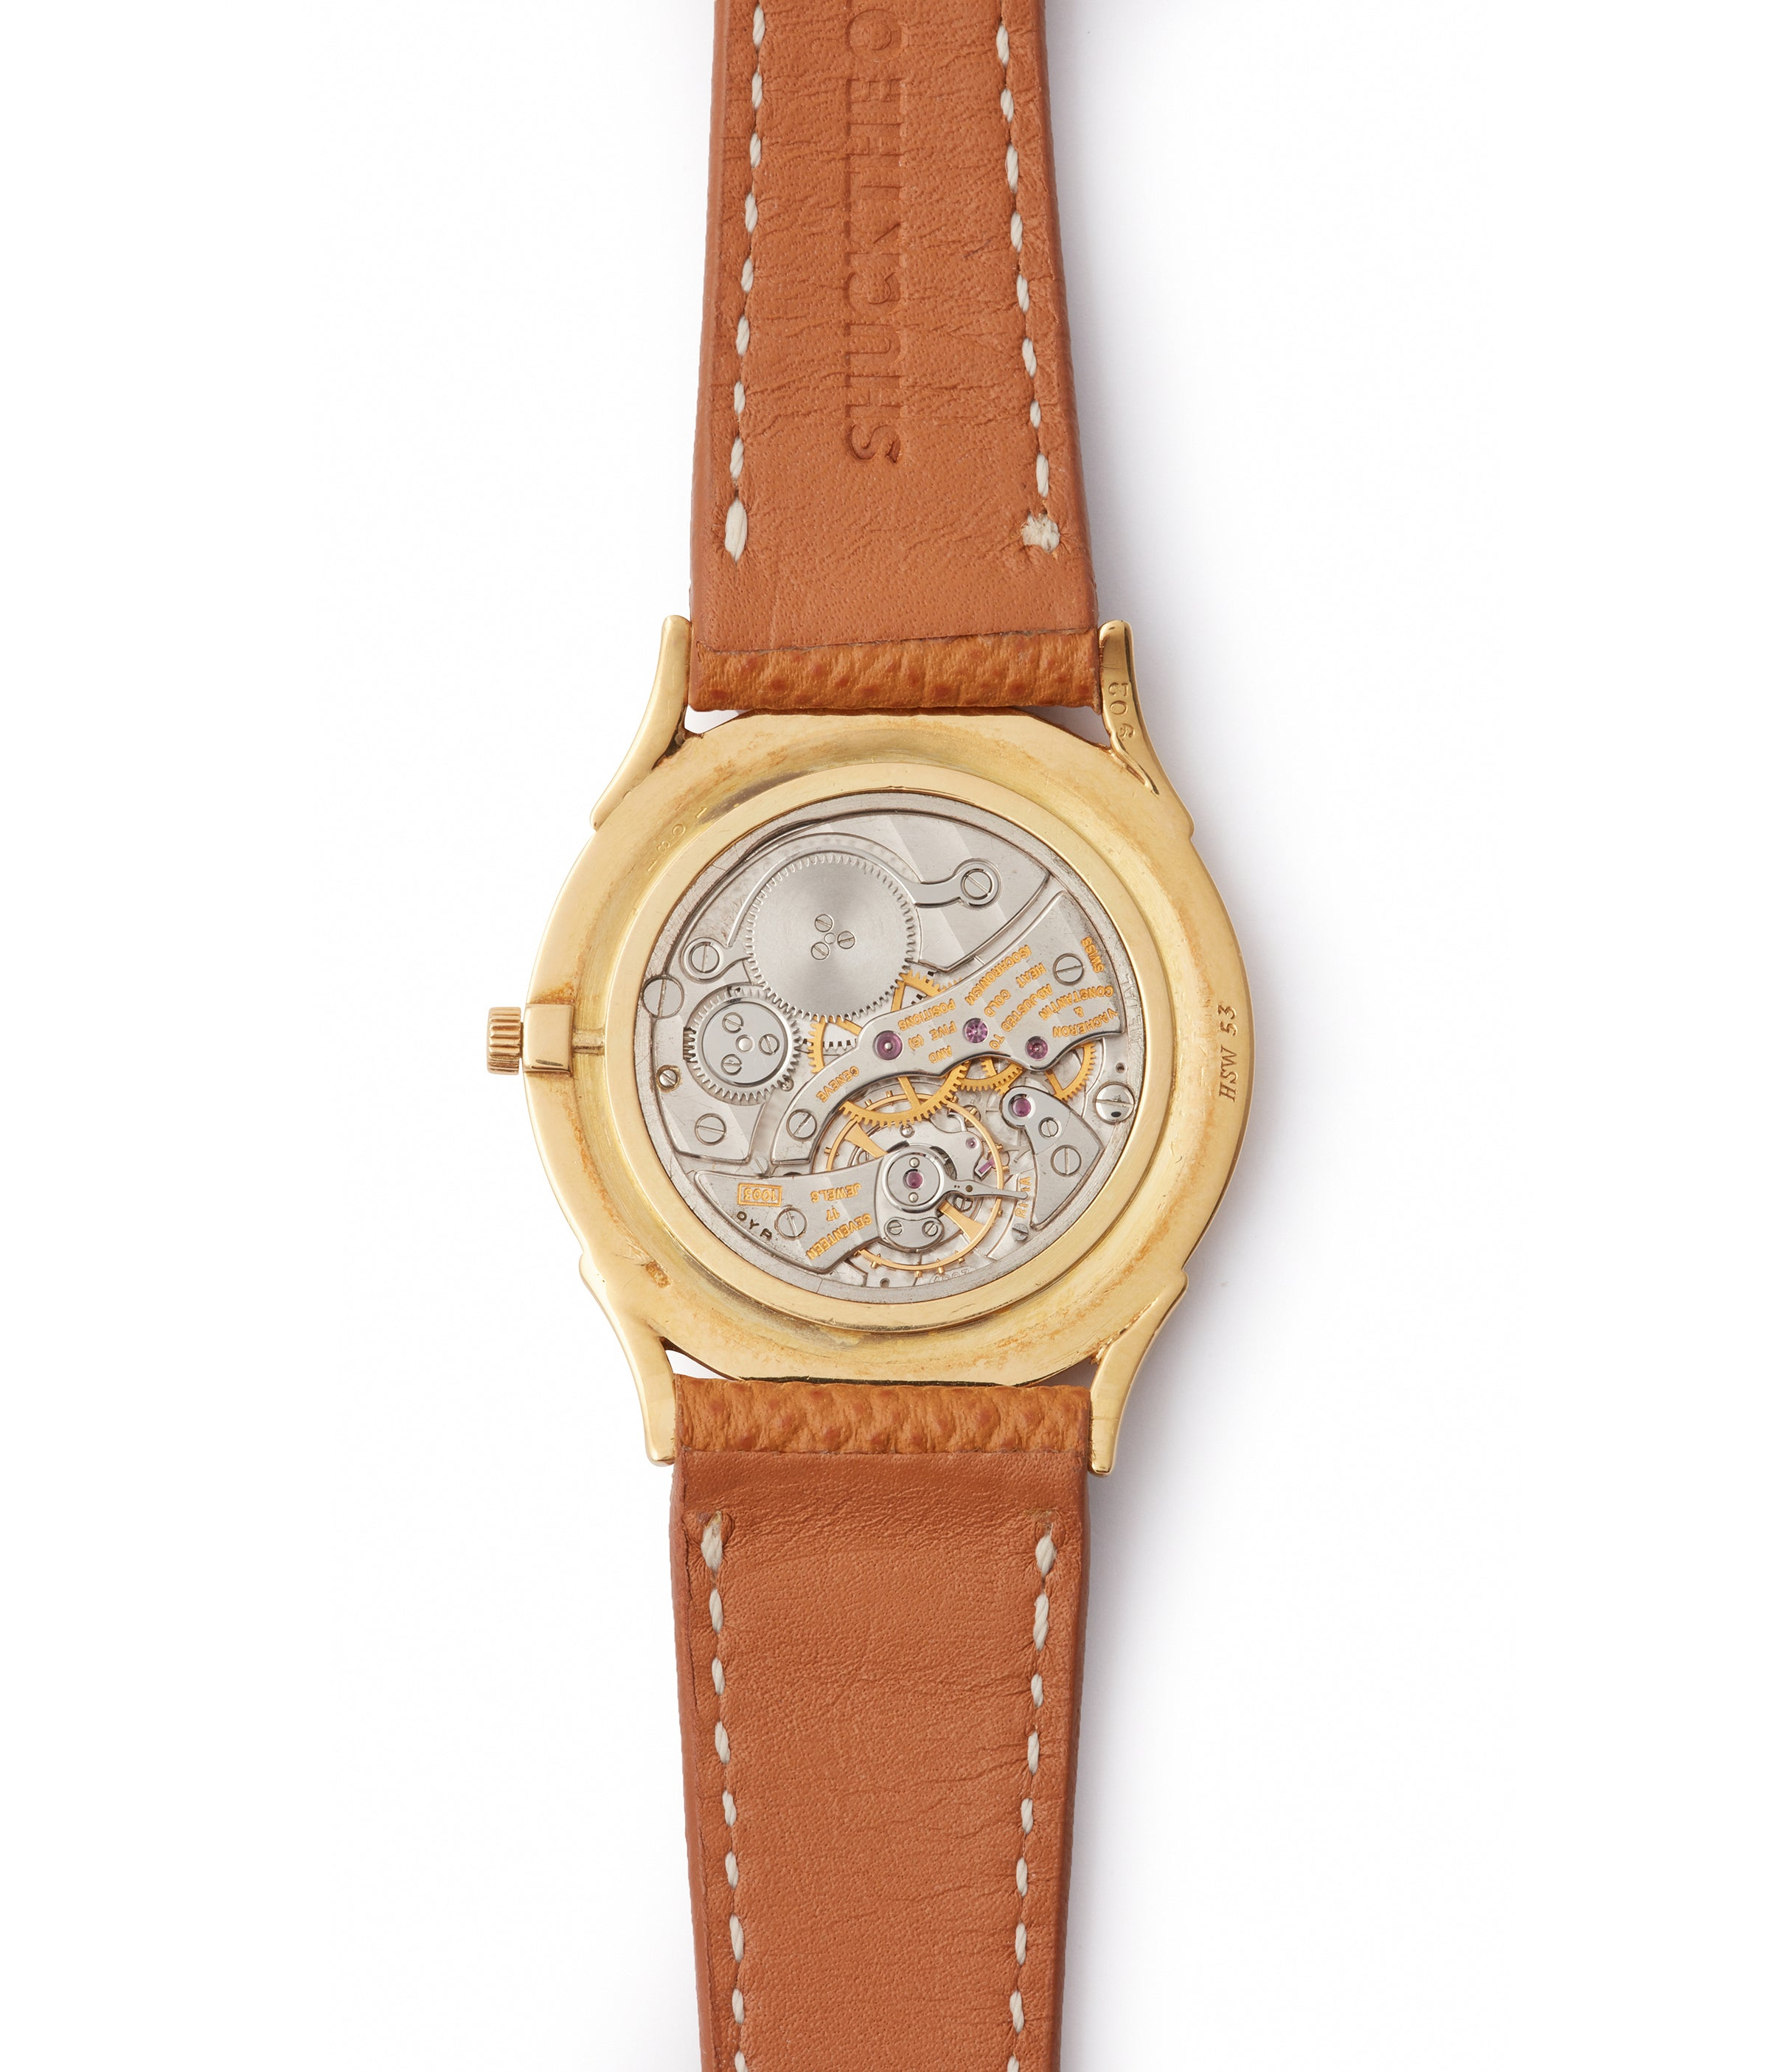 Cartier-signed Ref. 6194 | time-only | Yellow Gold